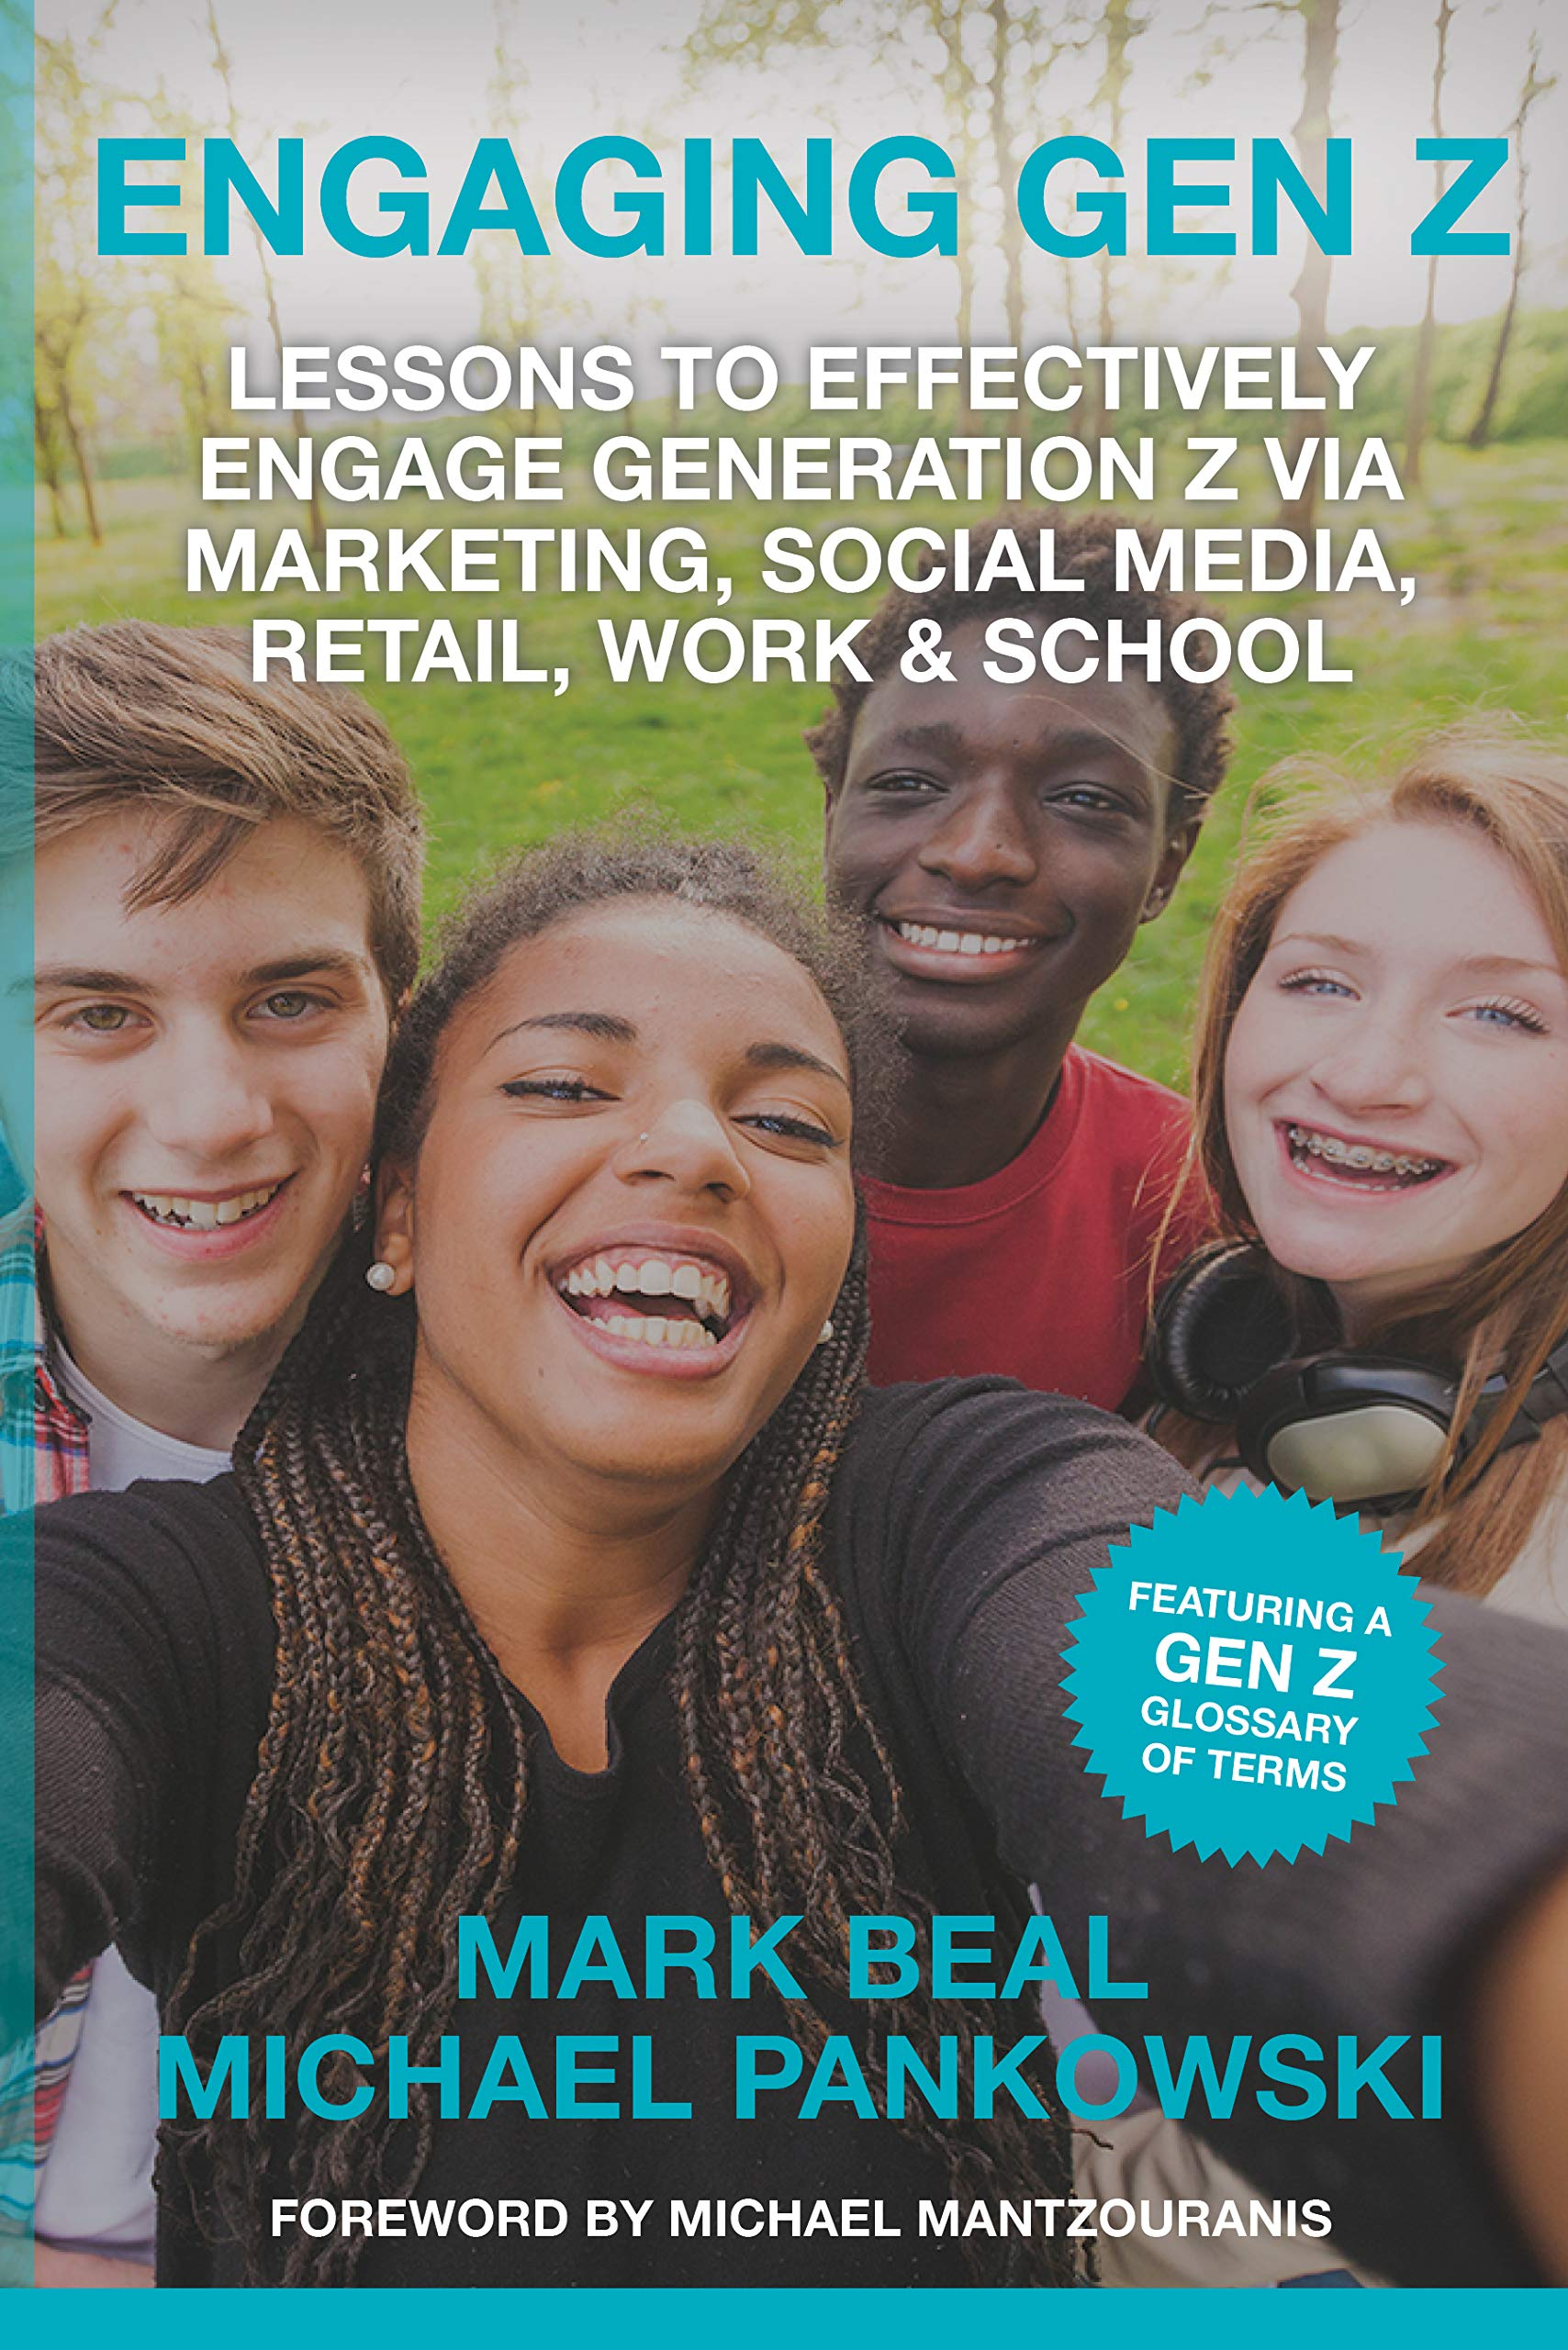 Engaging Gen Z: Lessons To Effectively Engage Generation Z Via Marketing, Social Media, Retail, Work & School